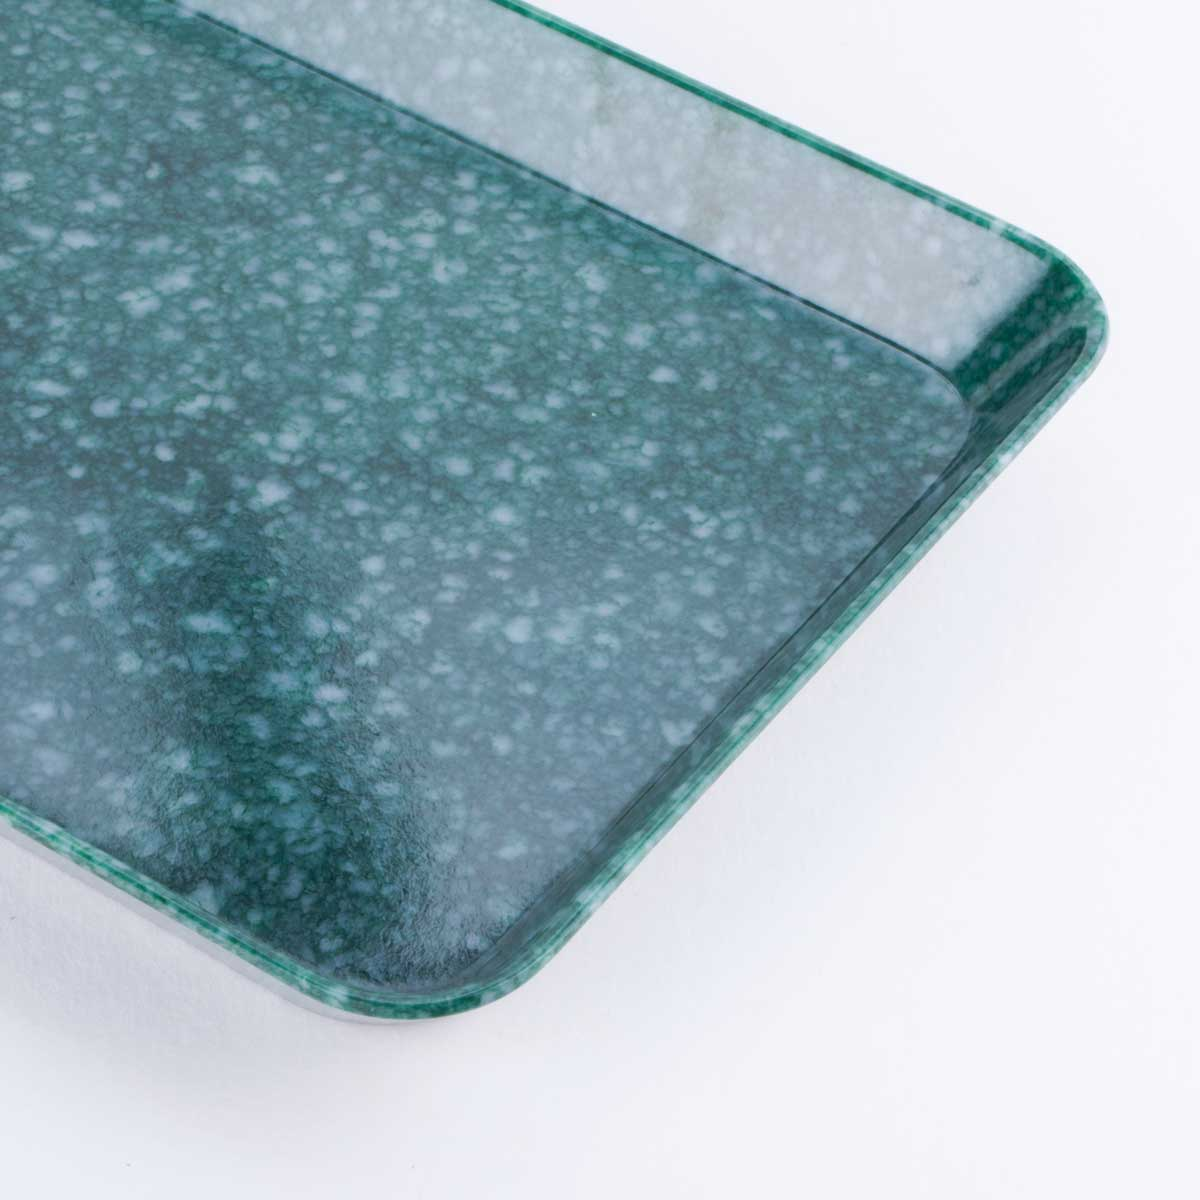 green marbled desk tray